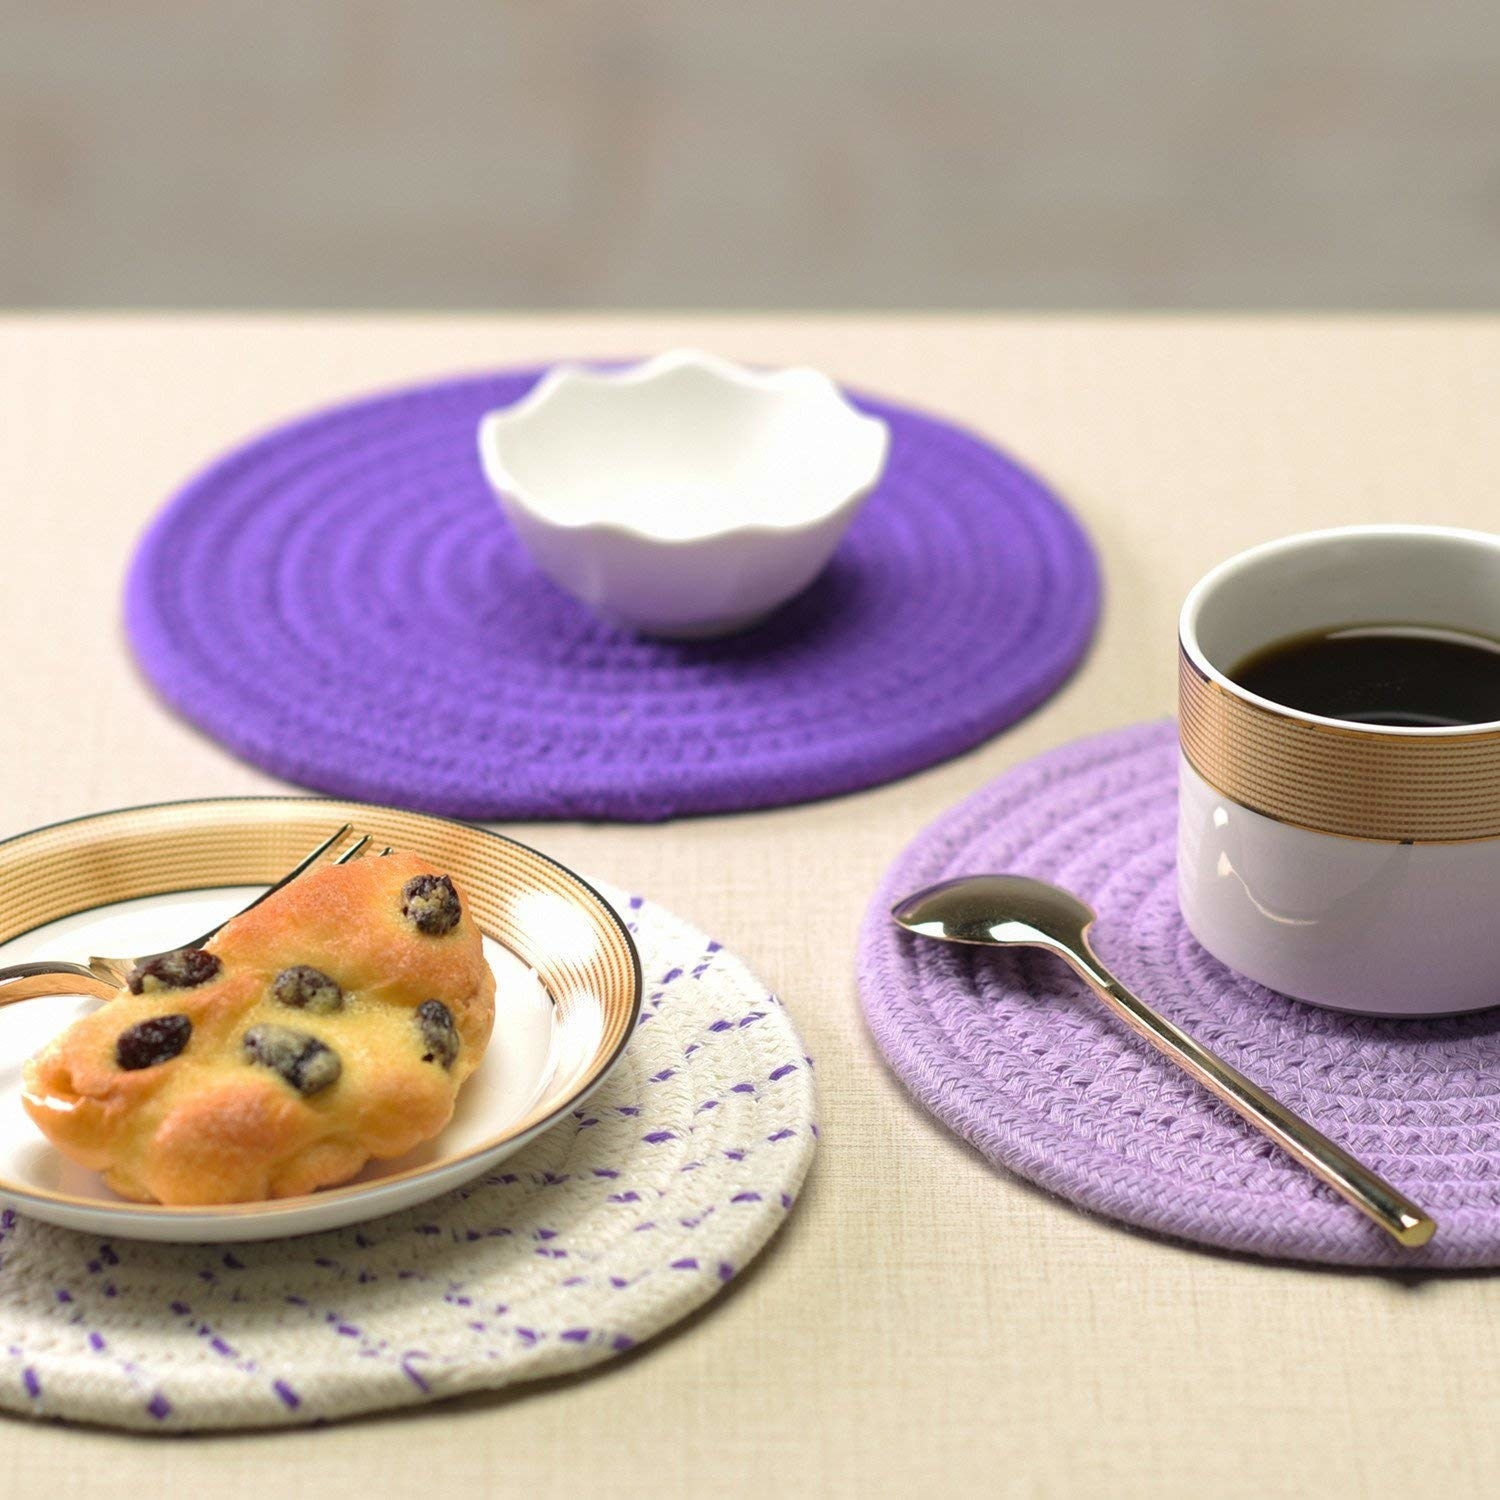 Coasters in use on table